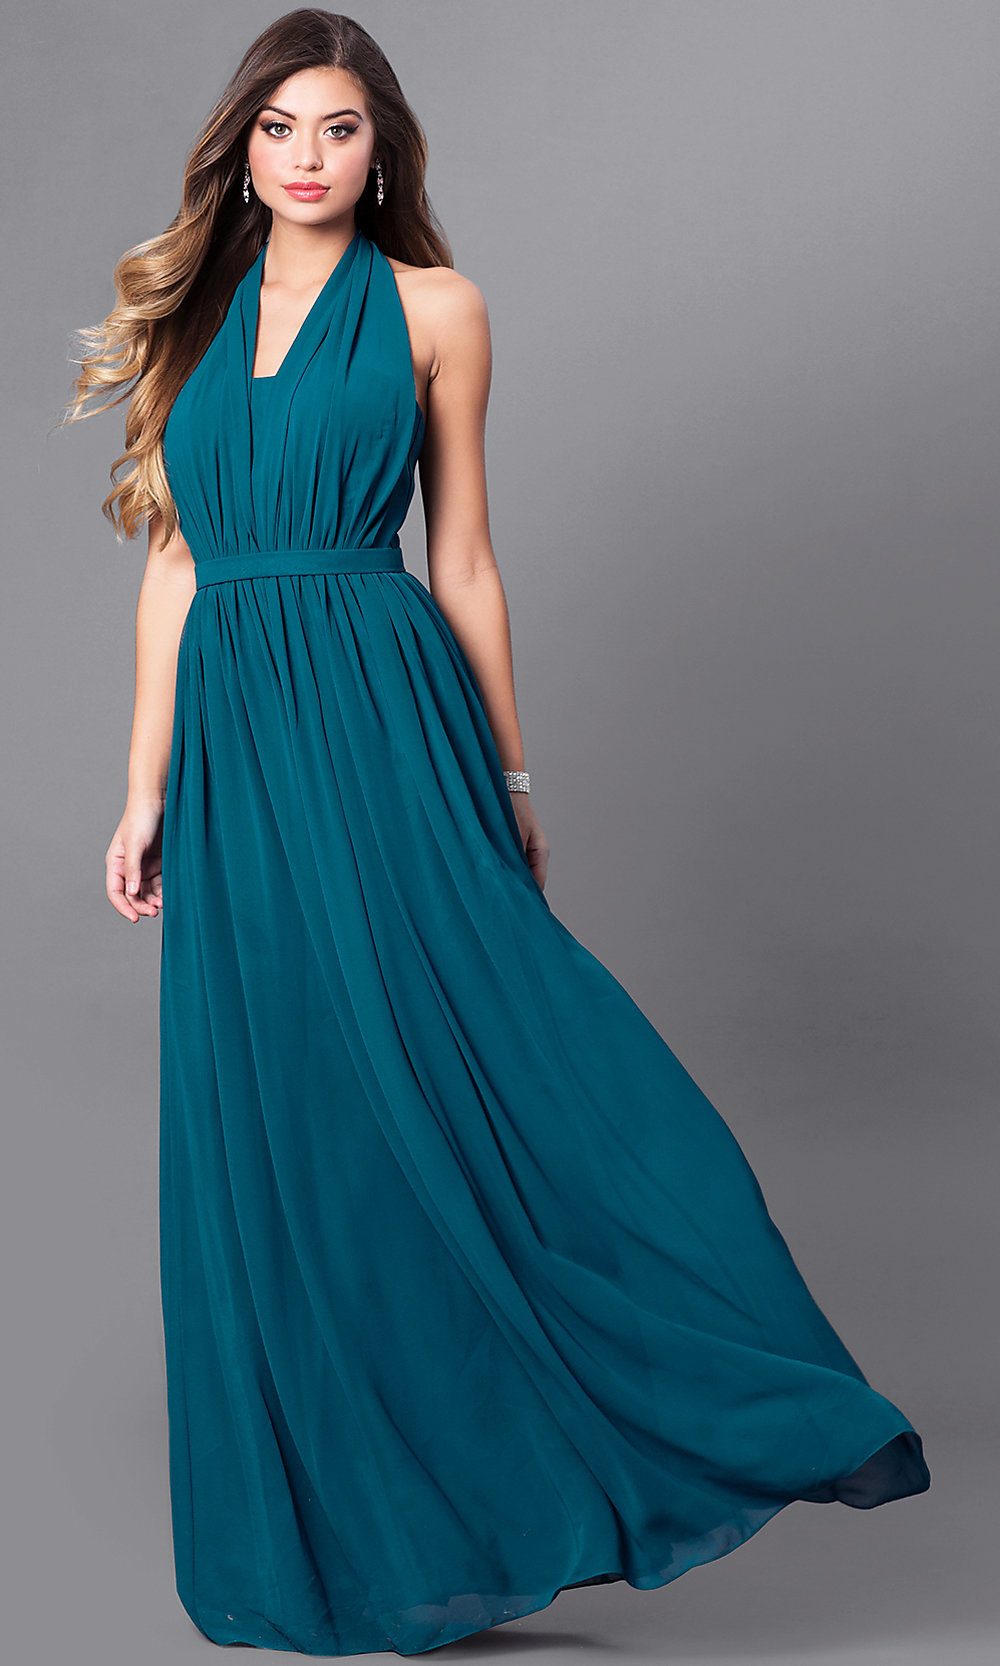 Halter VNeck Chiffon Long Prom Dress  PromGirl